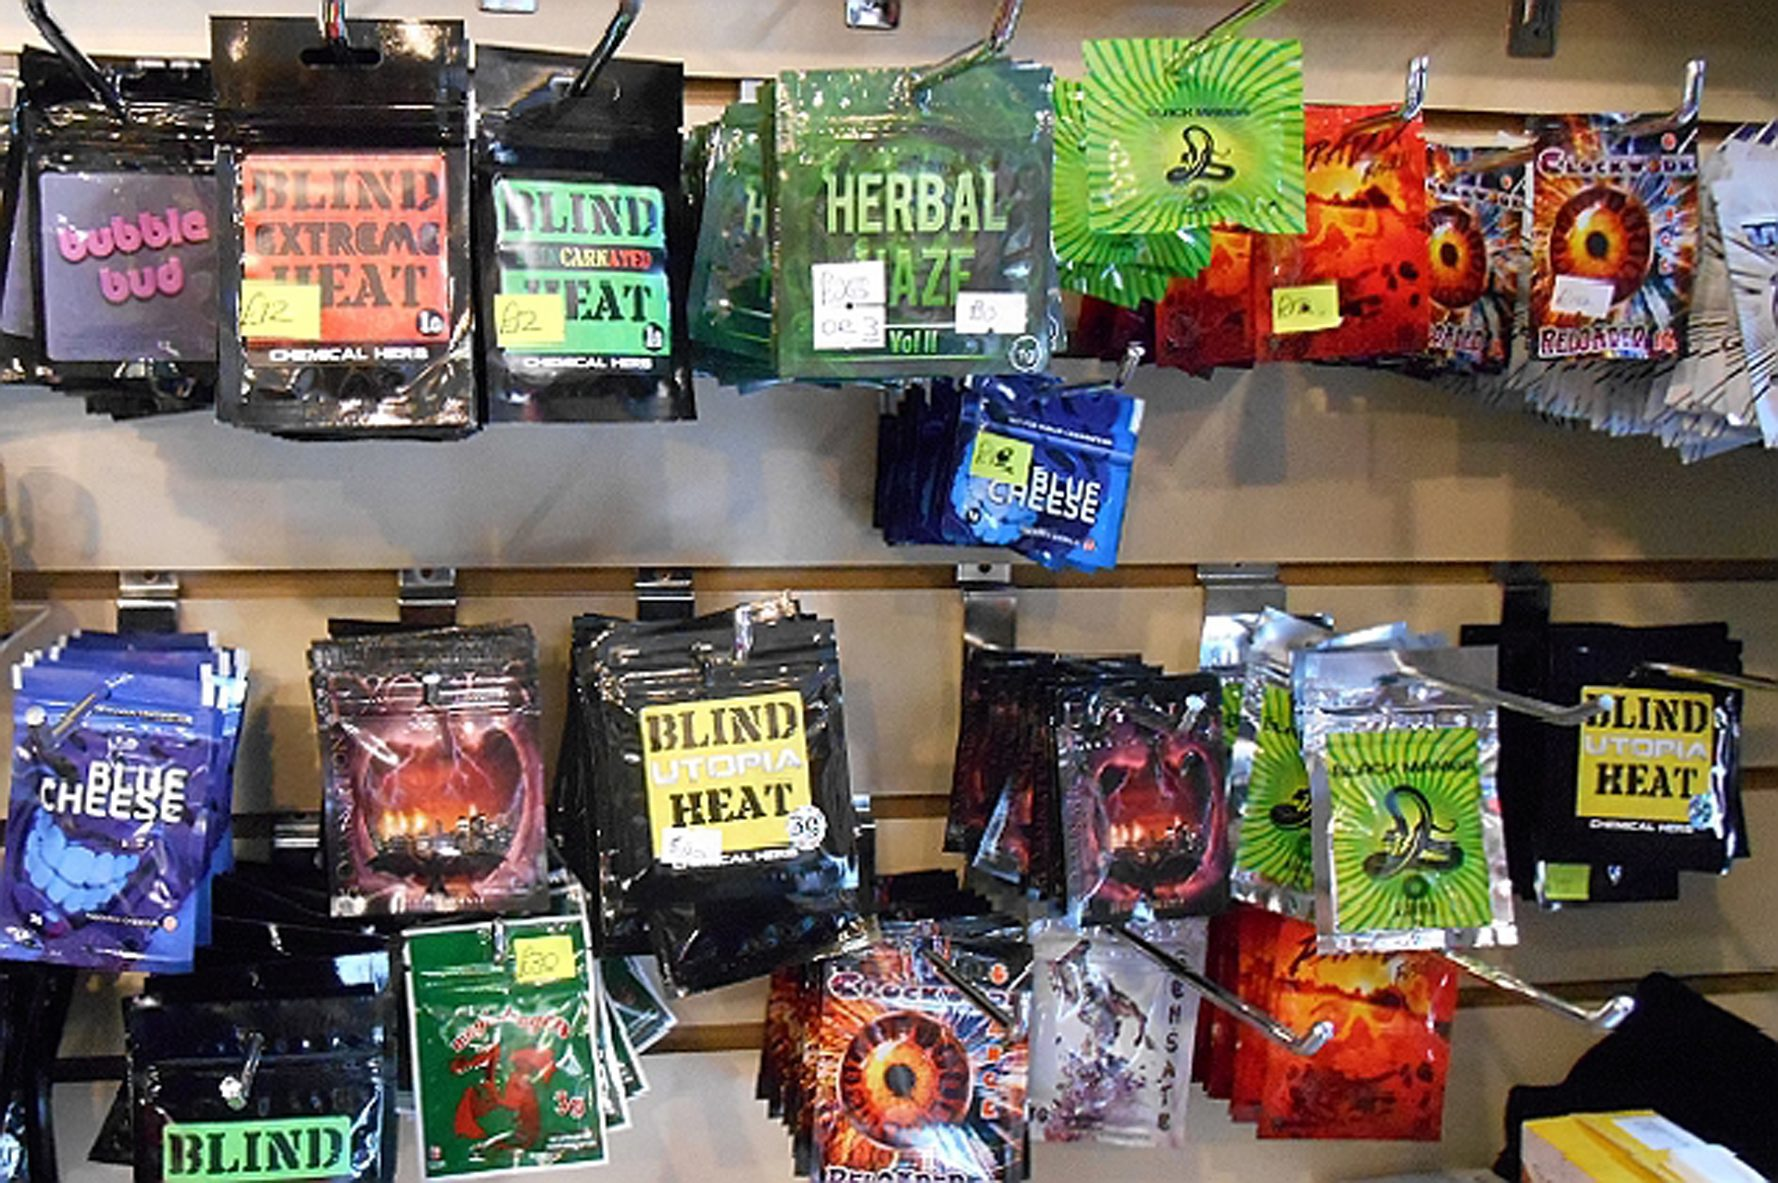 Buy herbal highs - What You Need To Know About The New Legal Highs Ban Bradford Telegraph And Argus